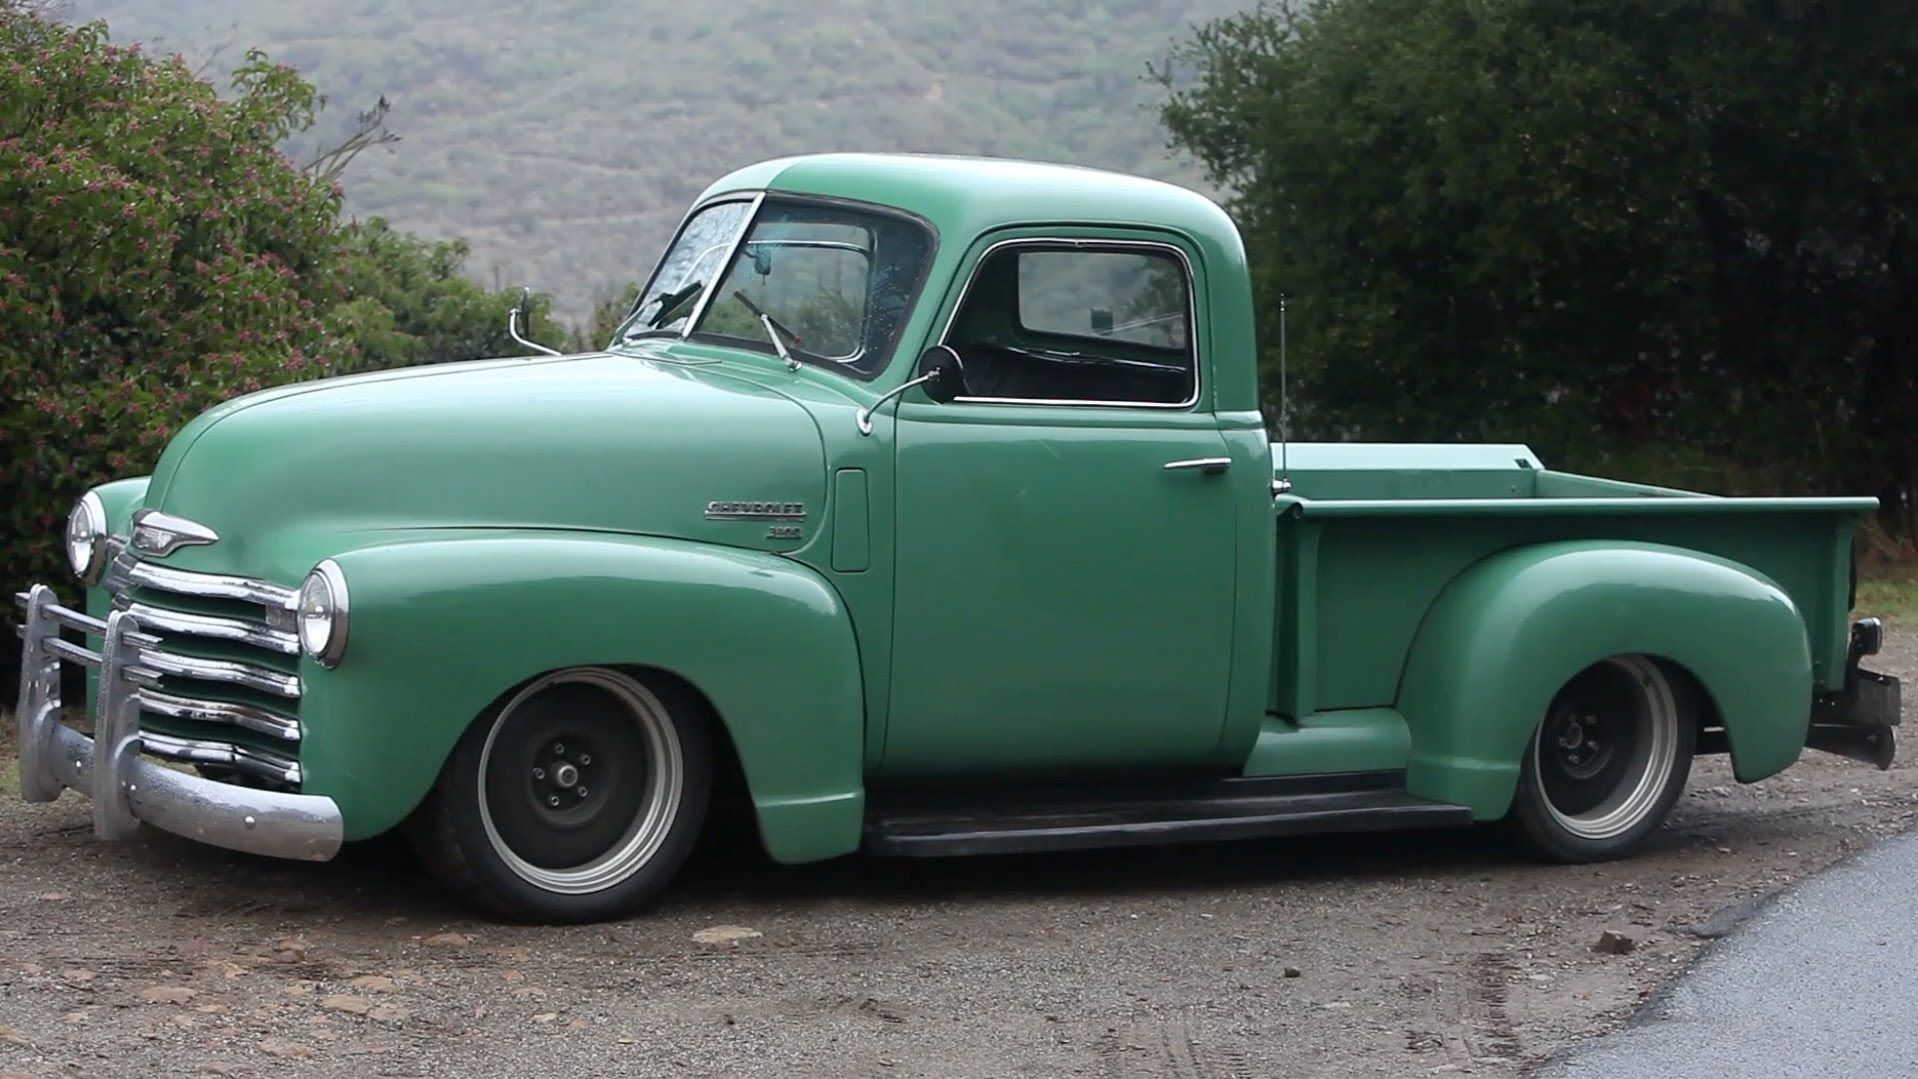 1955 chevrolet pro street truck youtube - This 1950 Chevy Pickup Isn T Your Grandpa S Farm Truck